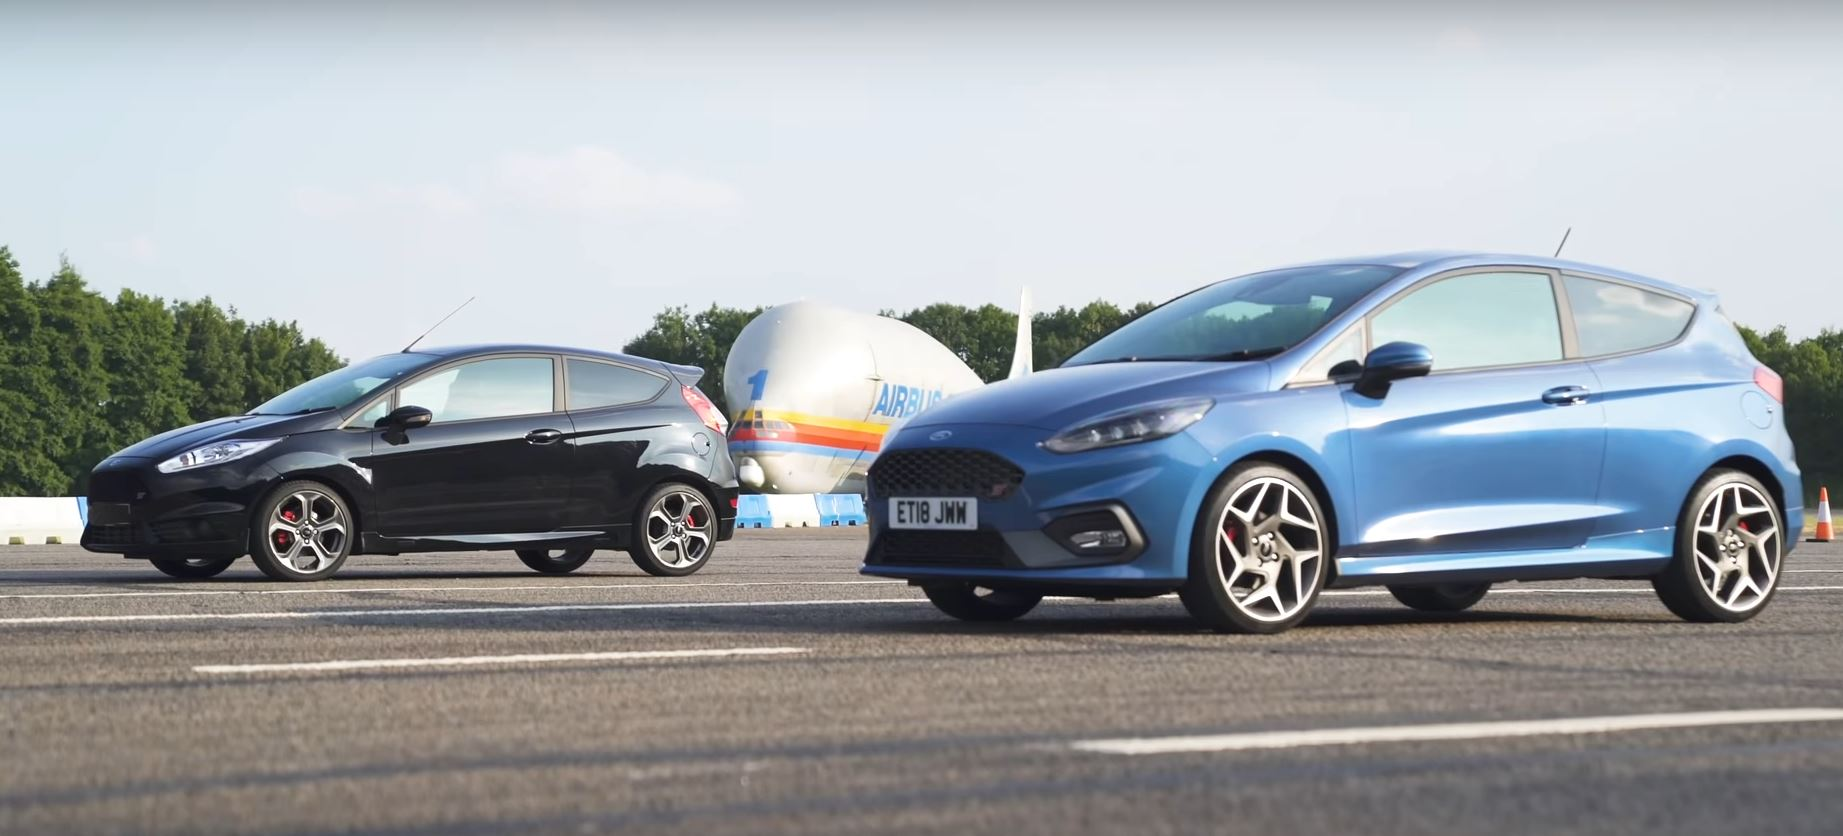 Ford Fiesta 1.6 Tdci Engine Problems 2019 Ford Fiesta St With 1 5l Turbo Is Faster Than Old 1